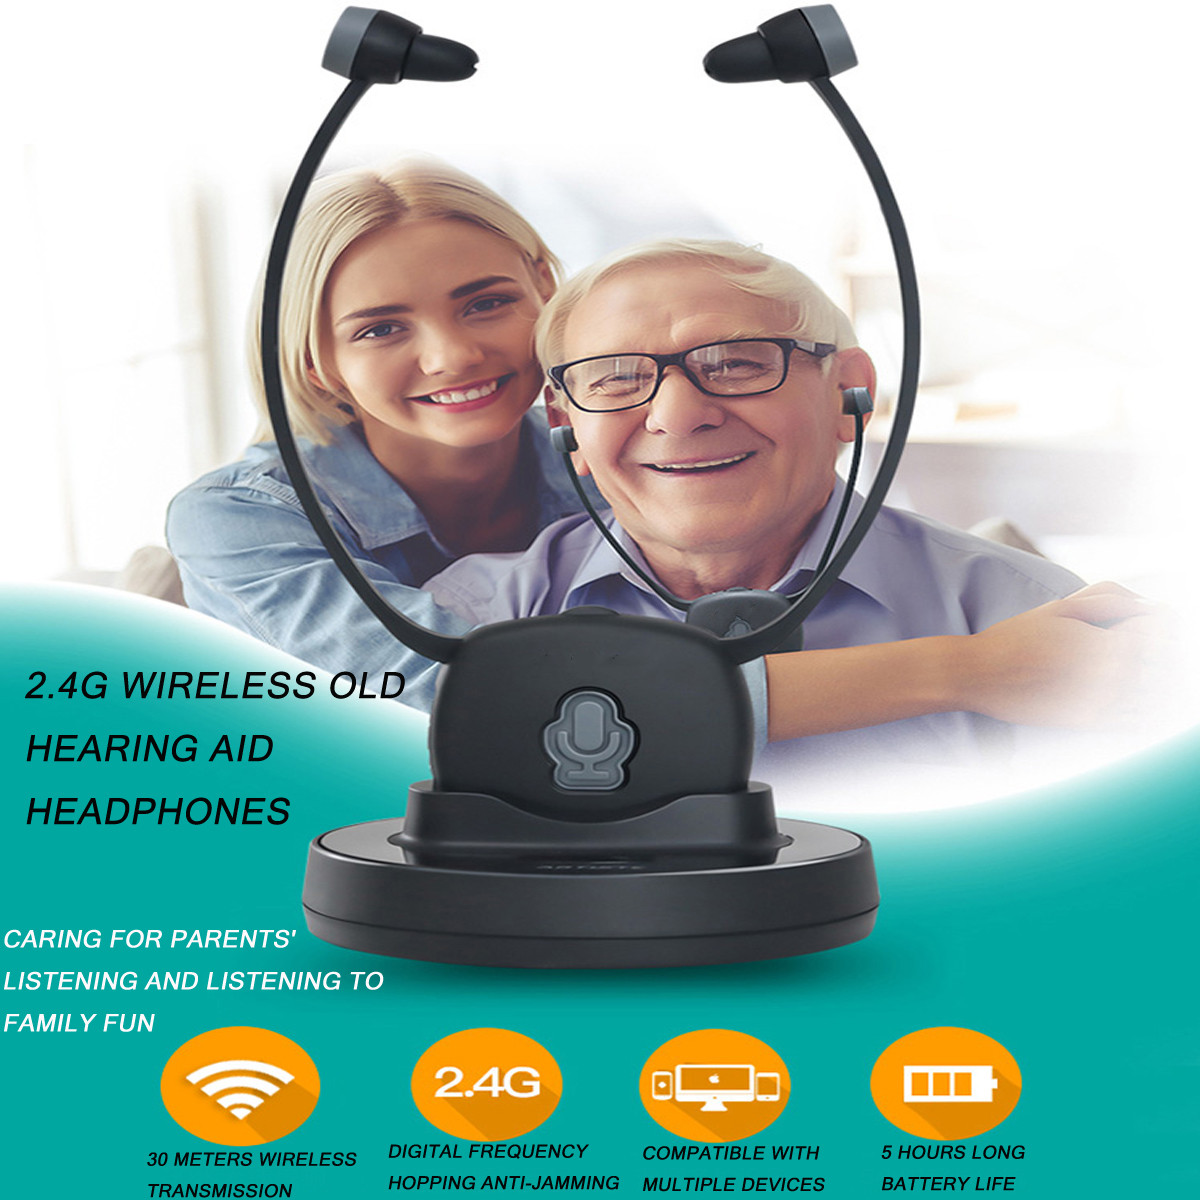 Elderly Hearing Aid Headphone 2.4G Wireless Old Hearing Aid Headphones TV Mobile Phones Listening Headset RechargeableElderly Hearing Aid Headphone 2.4G Wireless Old Hearing Aid Headphones TV Mobile Phones Listening Headset Rechargeable